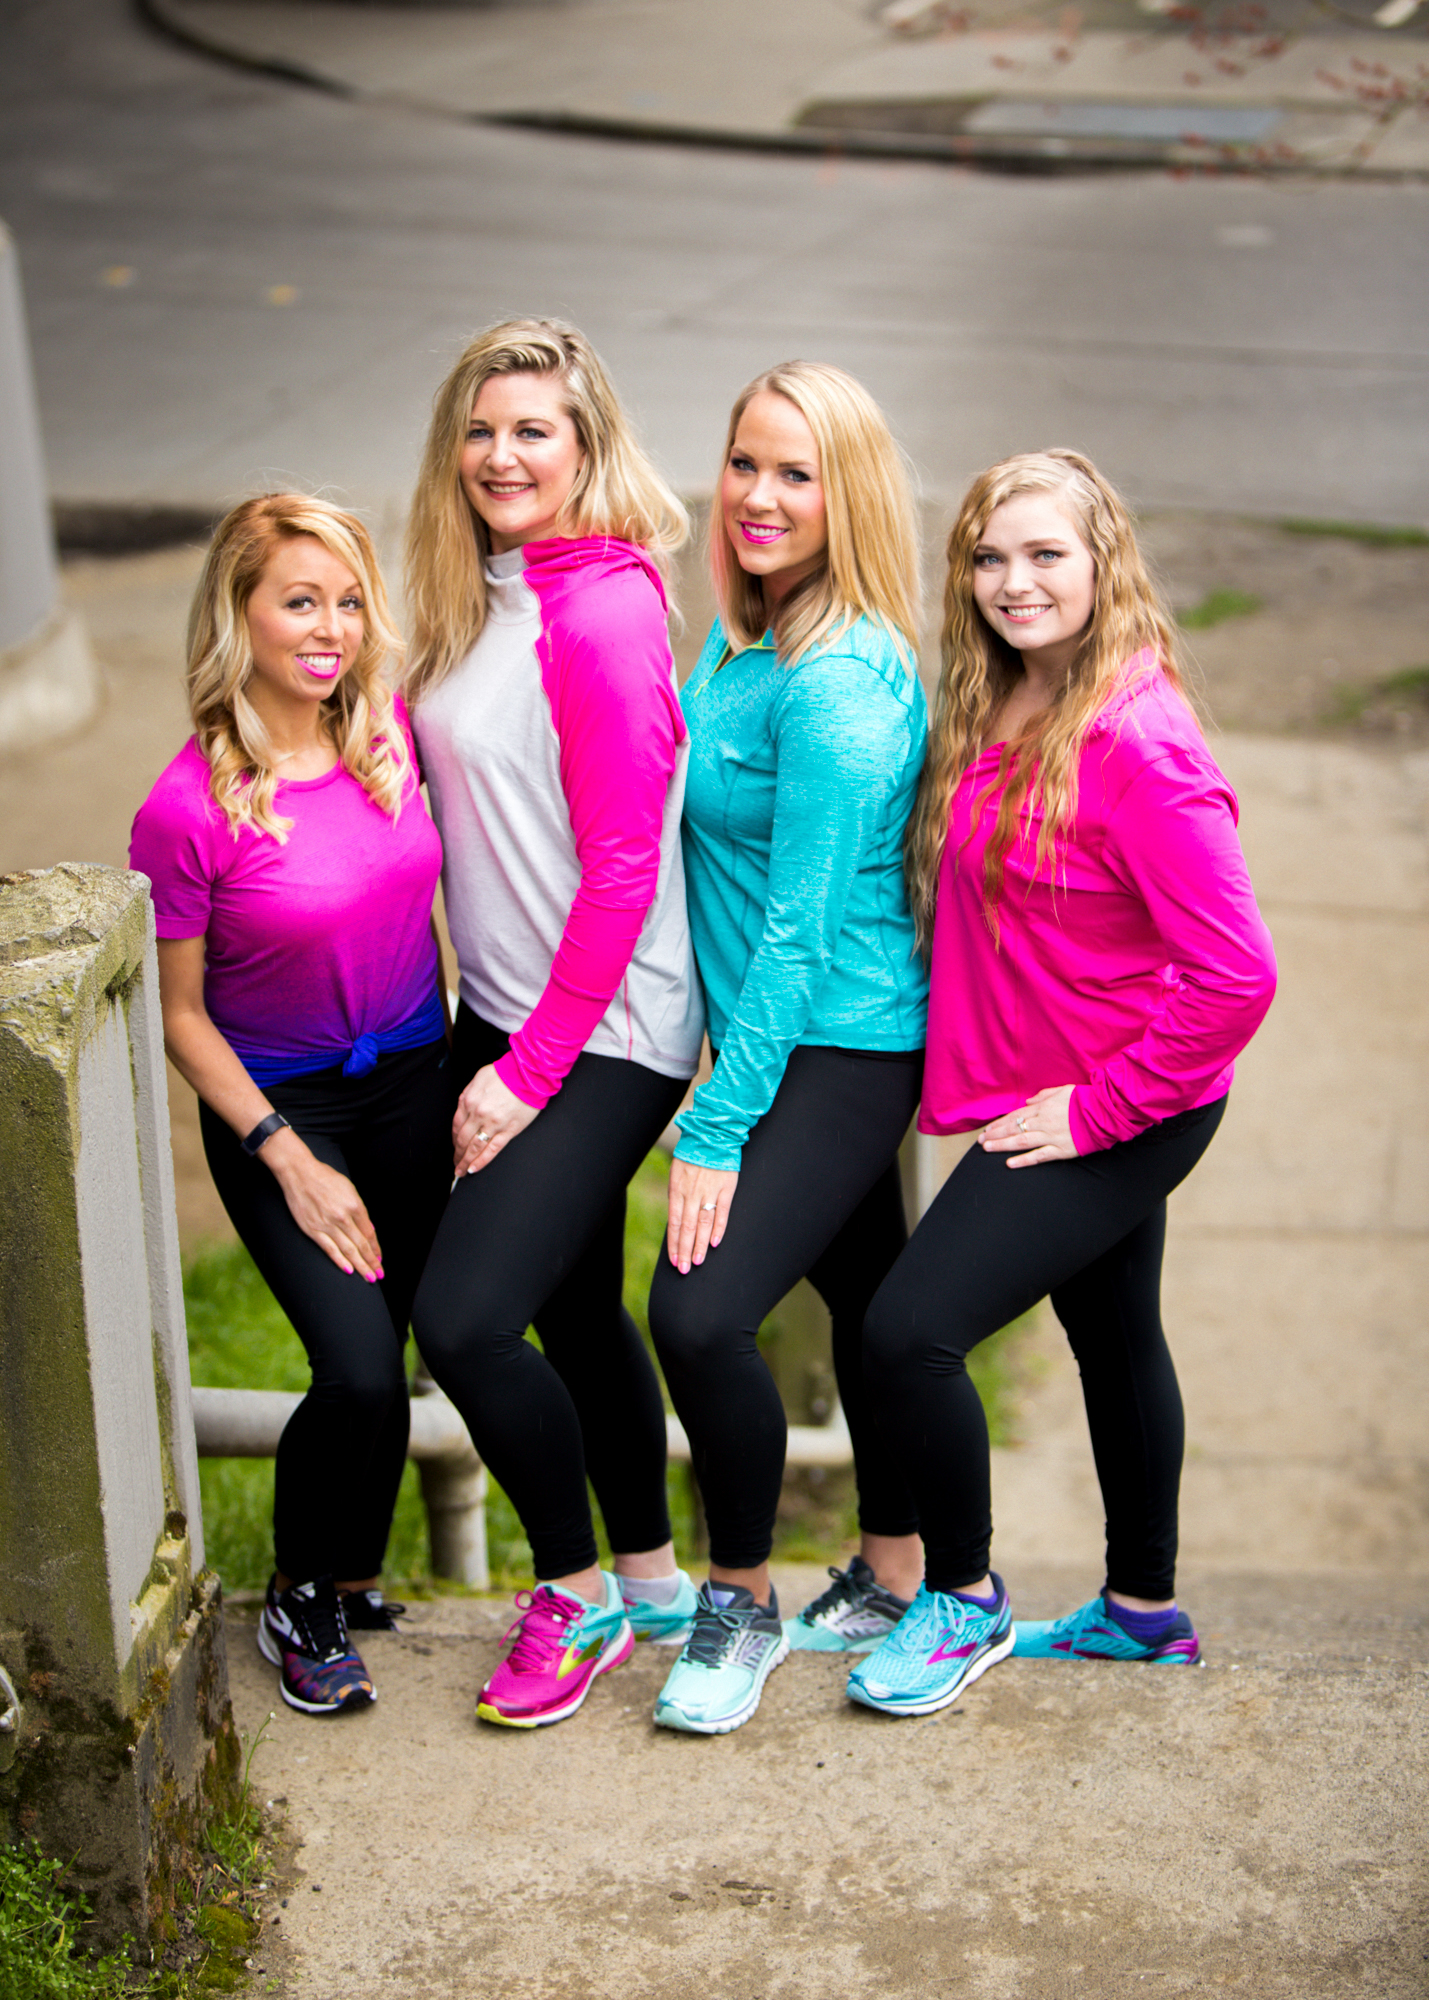 On the Ideal Protein plan, between the 4 of us gal pals we lost 120lbs and counting.  We held each other accountable and worked on our goals as a team.  Outfit: Brooks Running                      (Image: The Jeremy Townsend Experience)